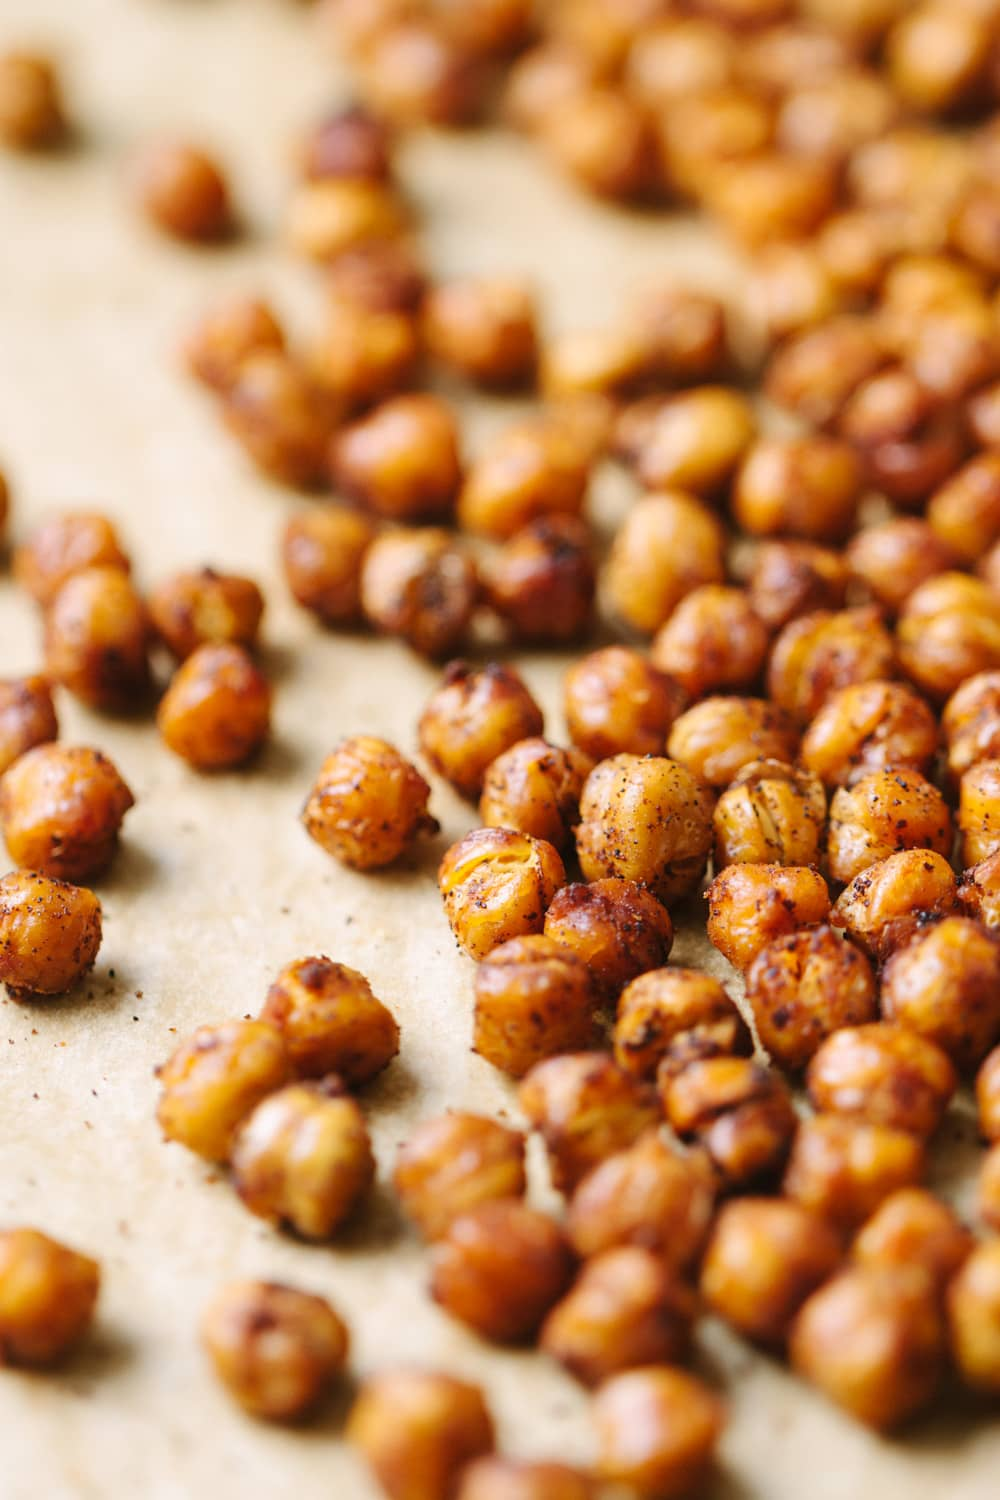 spicy chipotle roasted chickpeas on a baking sheet fresh from the oven